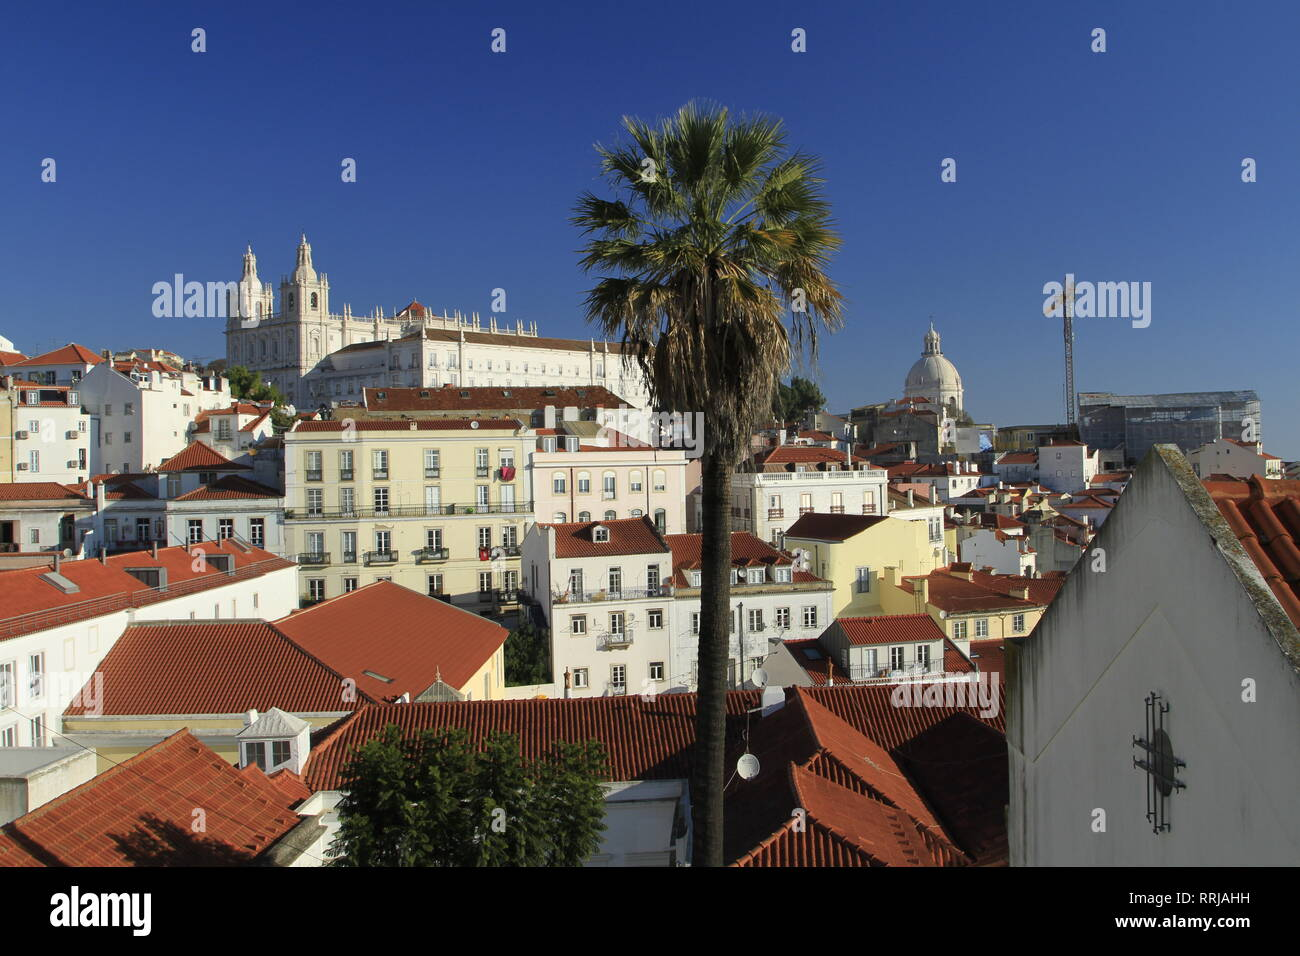 Looking out over the Alfama from the Miradouro das Portas do Sol, Lisbon, Portugal, Europe - Stock Image